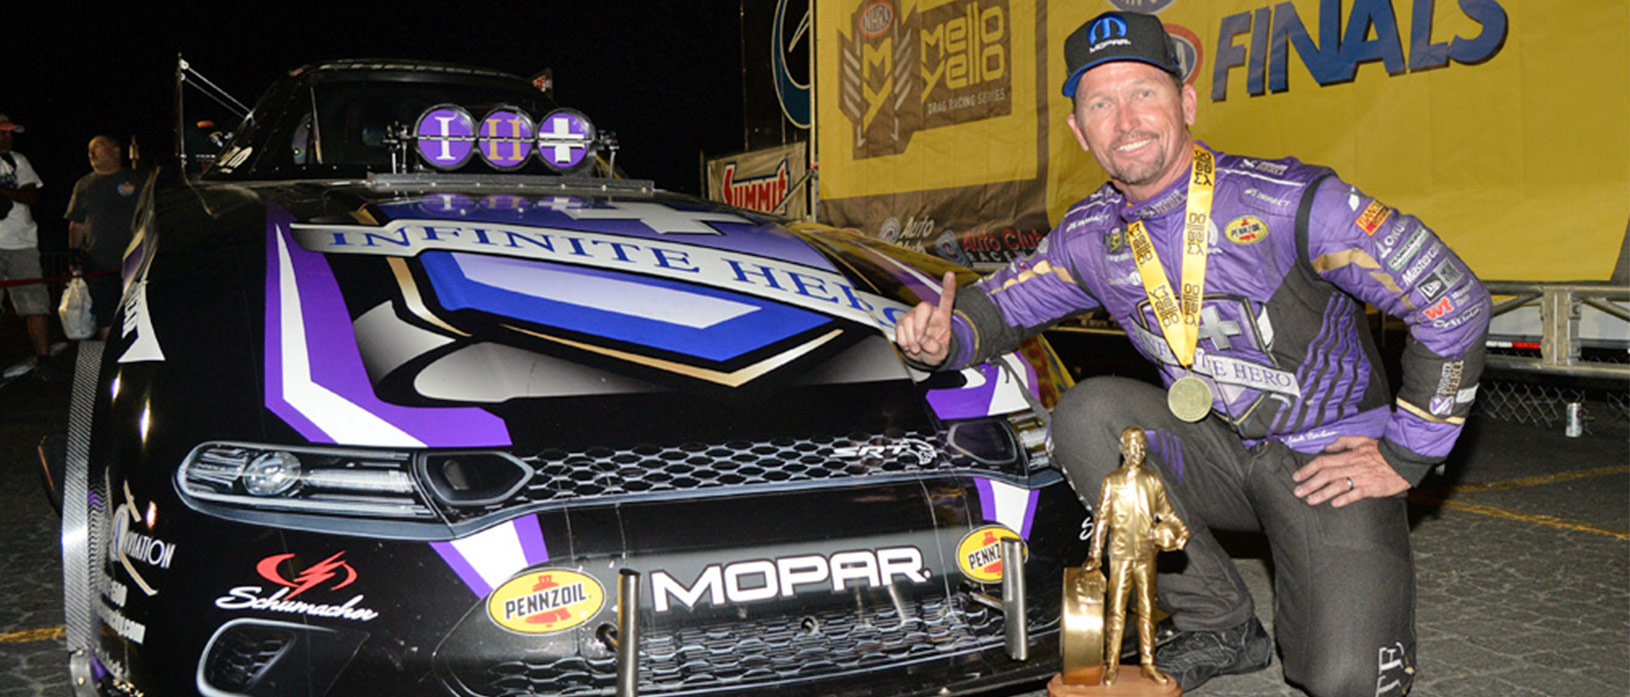 jack beckman with his funny car and wally trophy